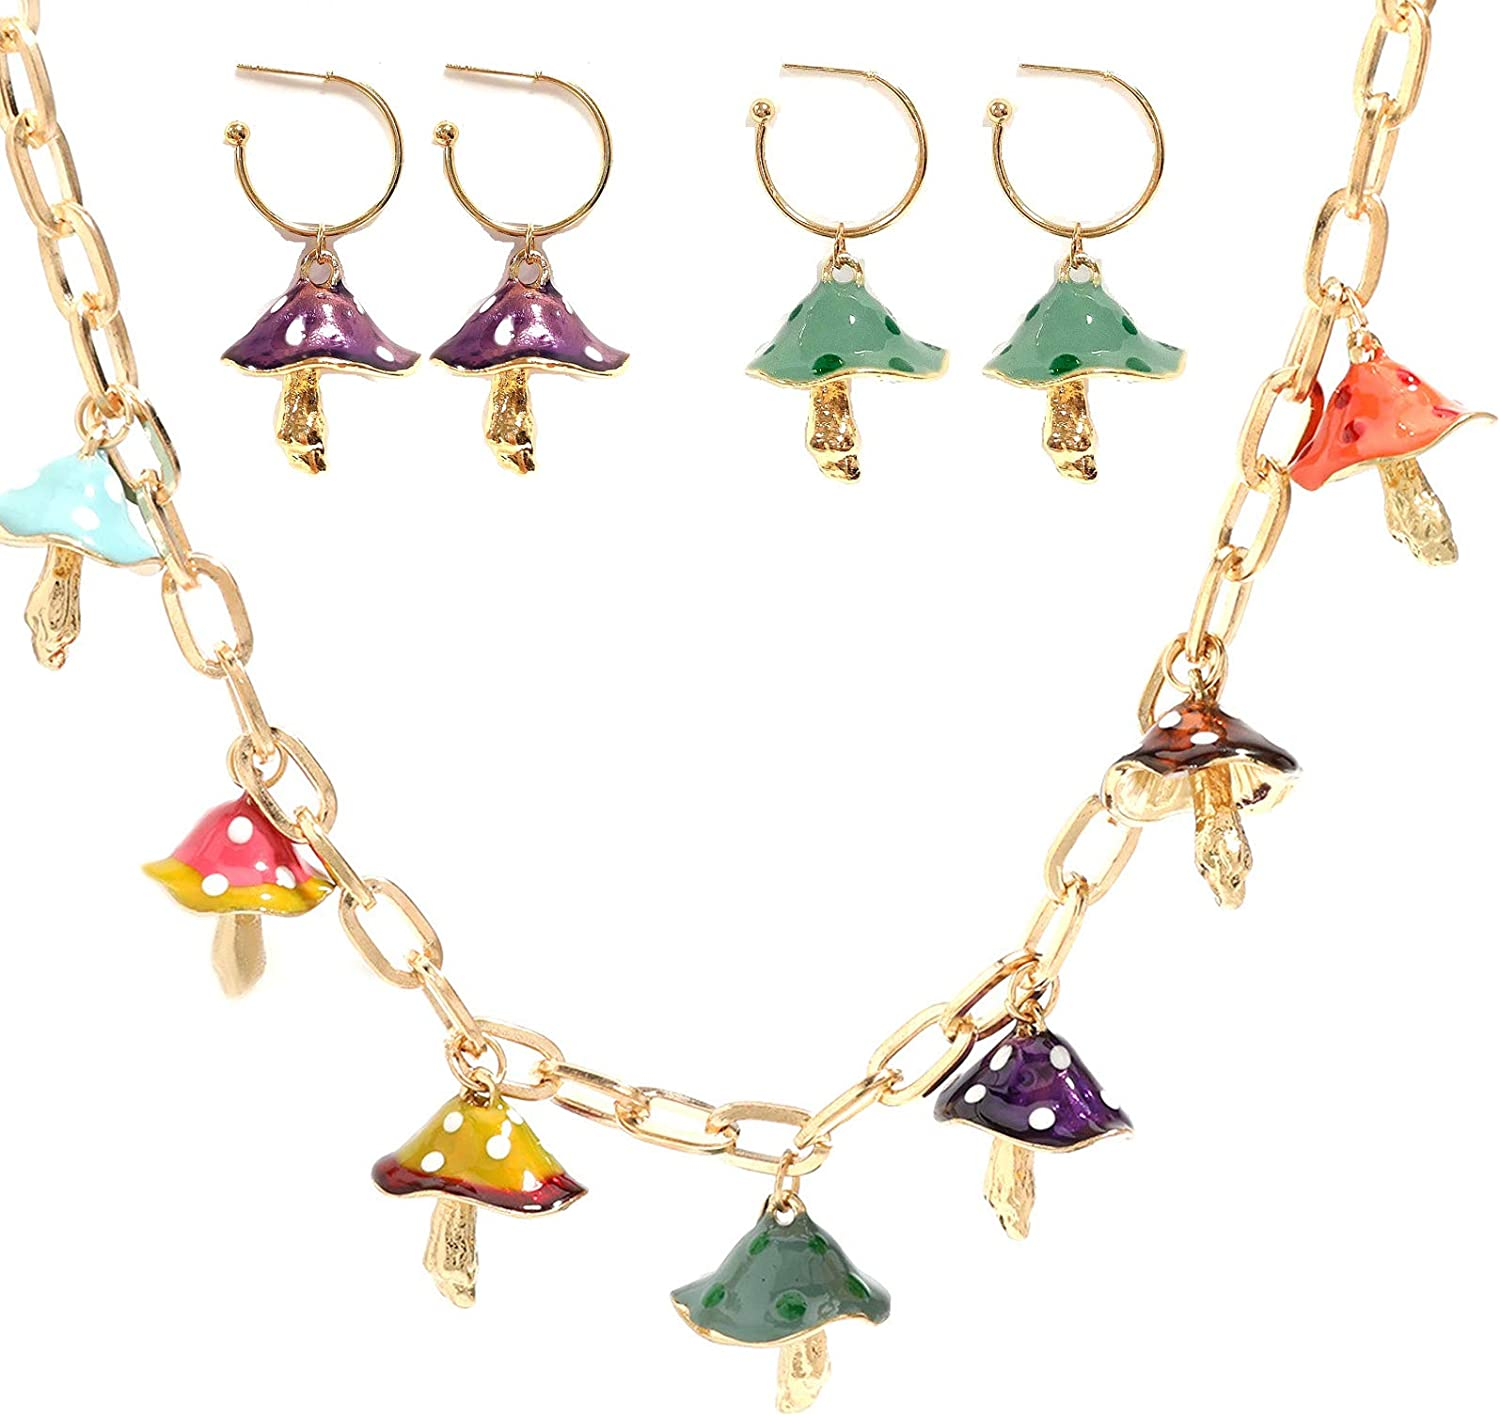 Harajuku Cute Colorful Musheroom Shape Necklace Drop Max 44% OFF and Pendant Manufacturer direct delivery